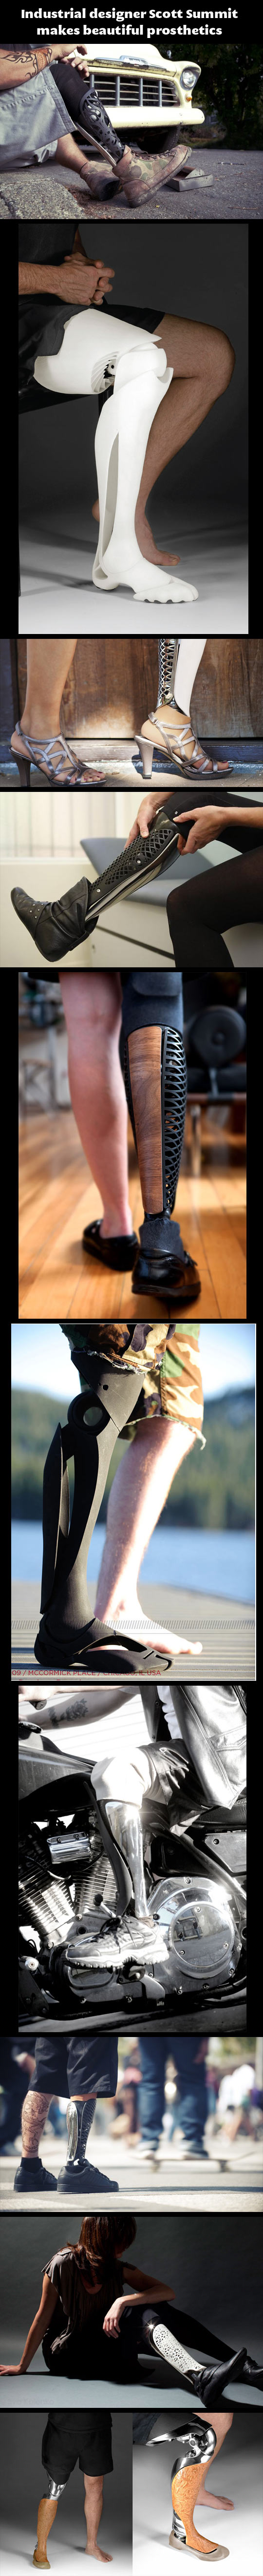 cool-Scott-Summit-industrial-designer-prosthetics